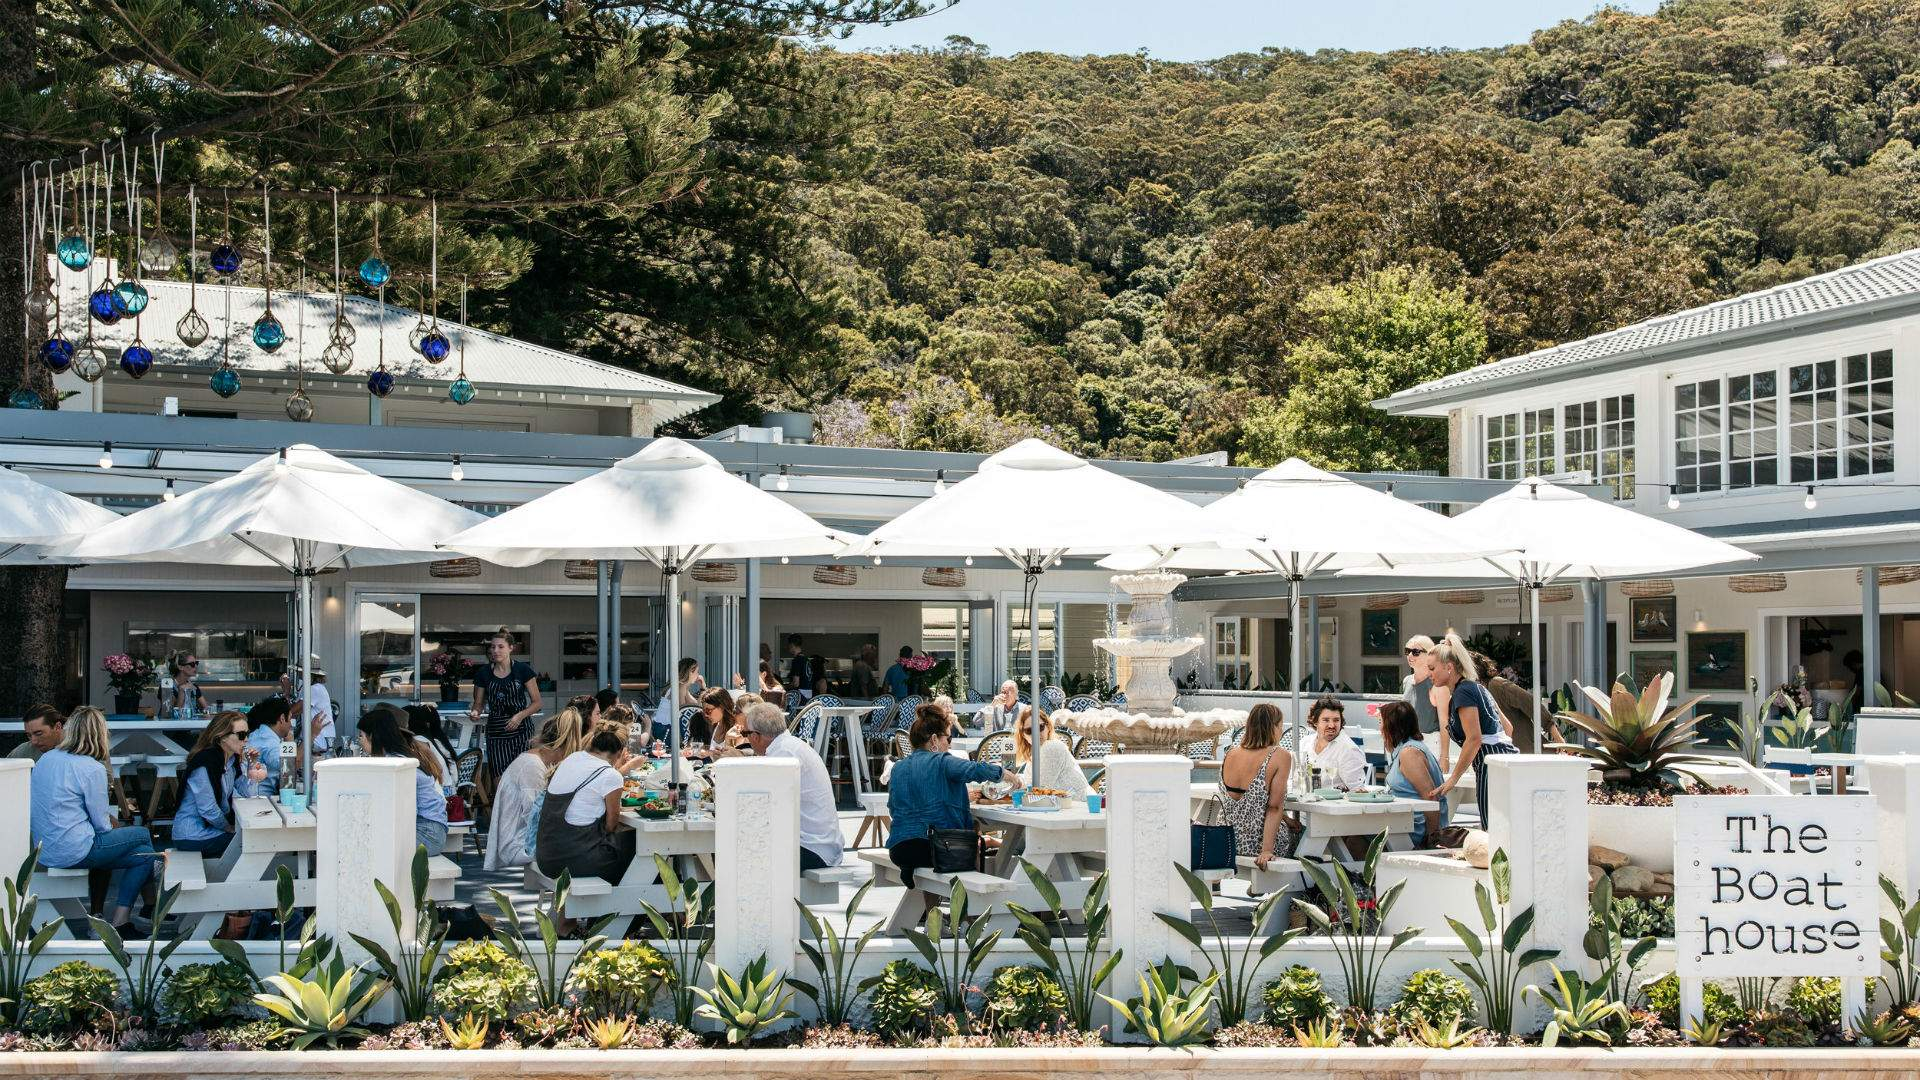 Patonga's Renovated Boathouse Hotel Is Your New Spot to Plan a Weekend Getaway Around